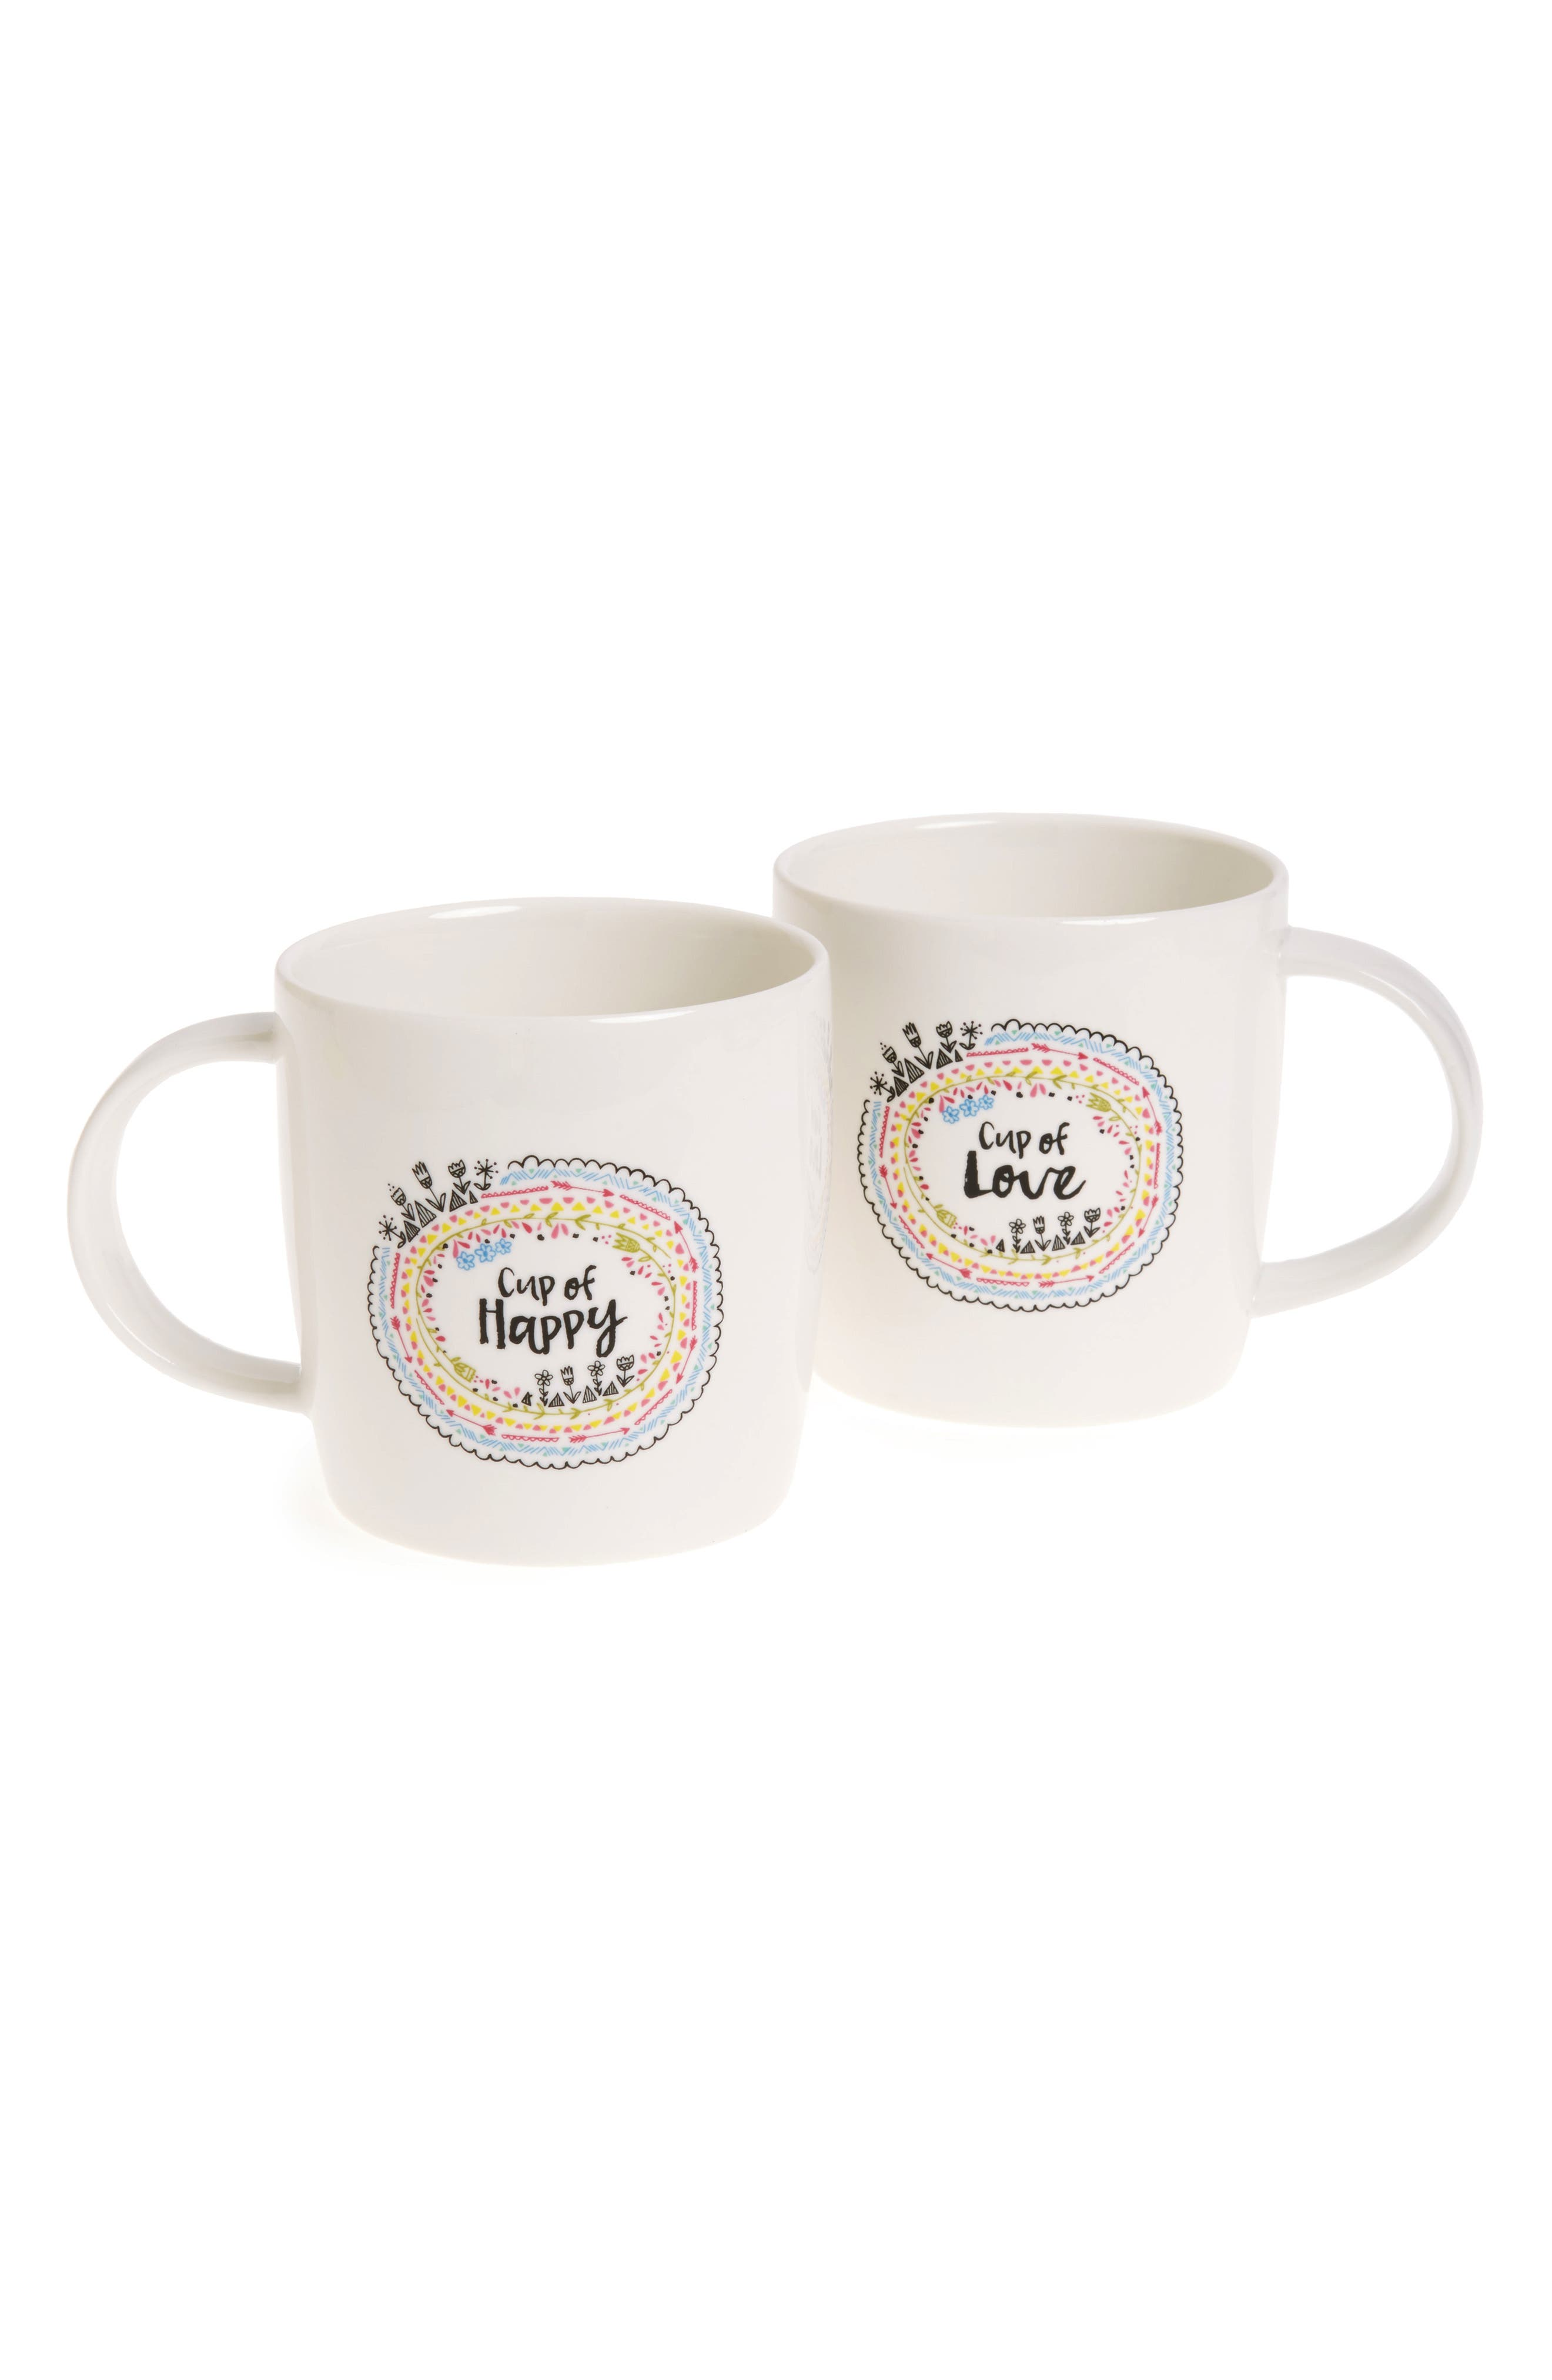 Cup of Happy & Cup of Love Set of 2 Mugs,                         Main,                         color, Ivory